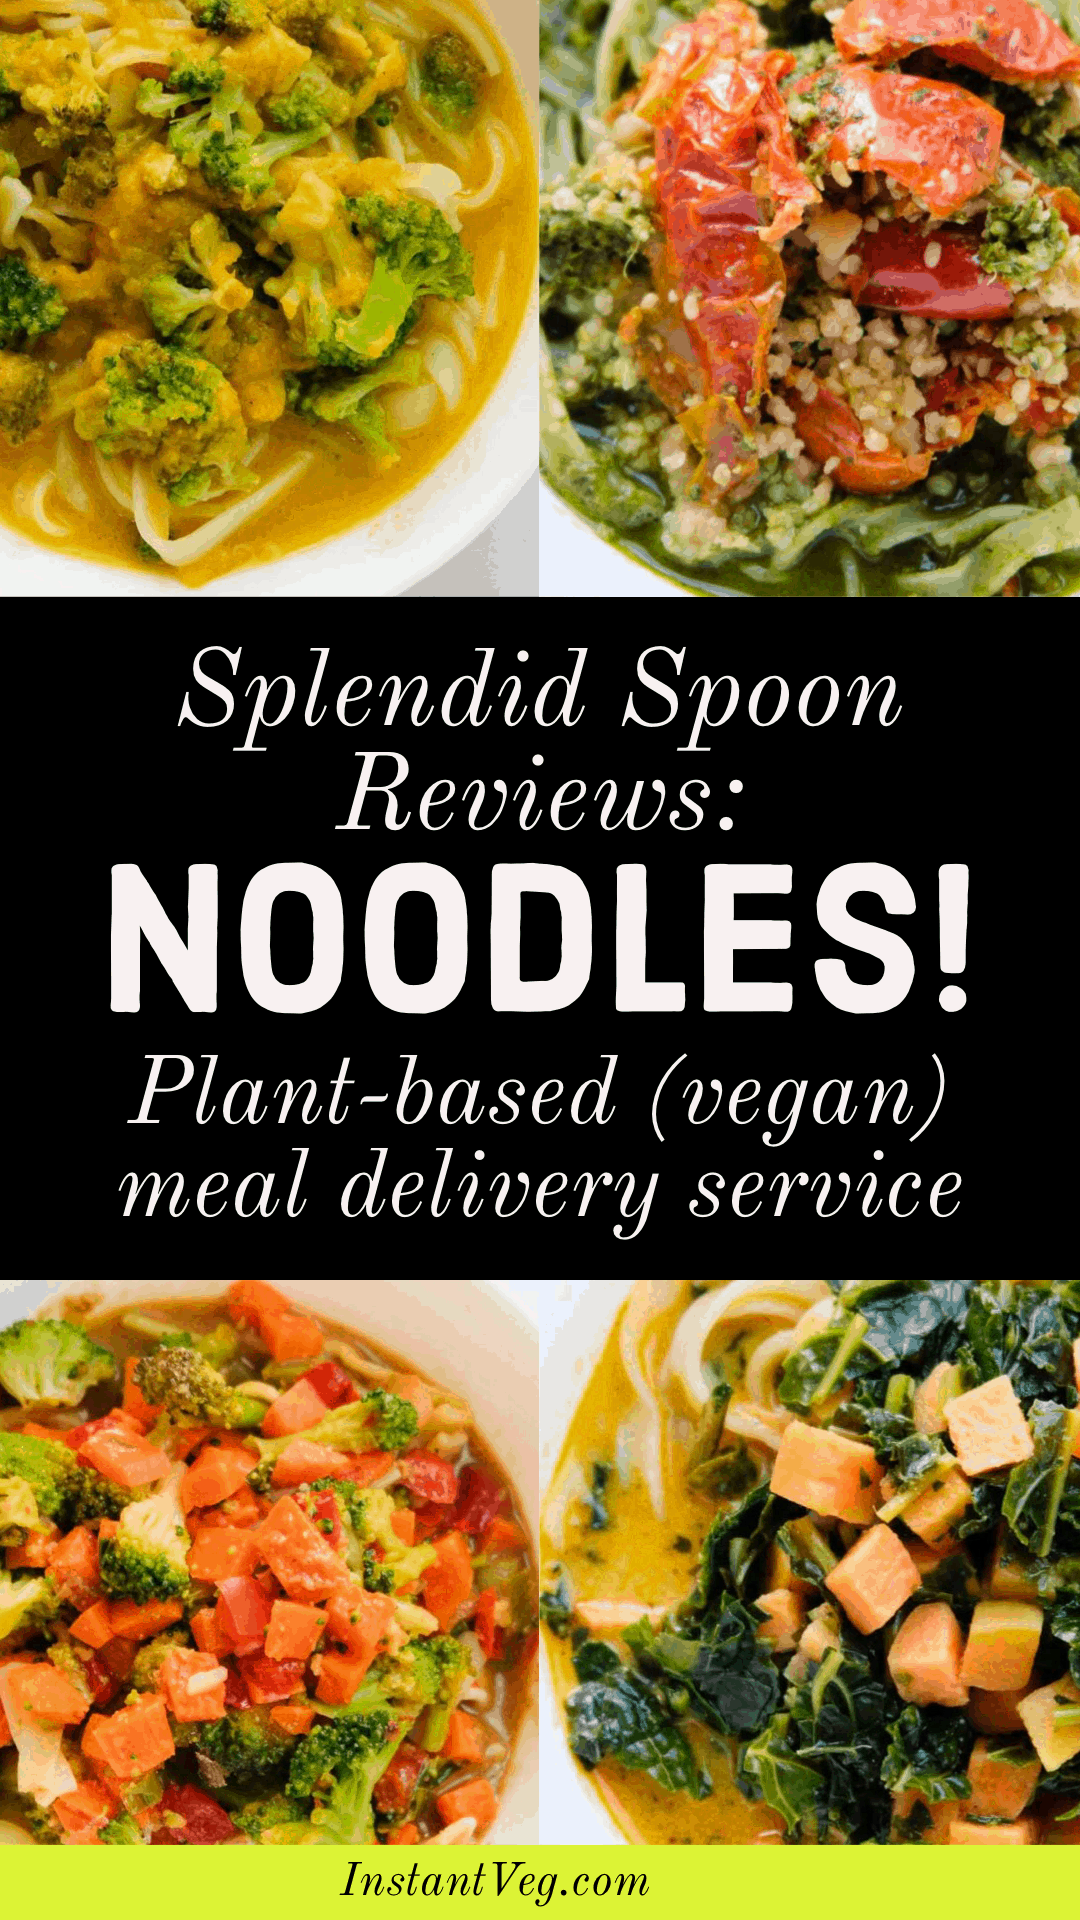 Splendid Spoon Reviews